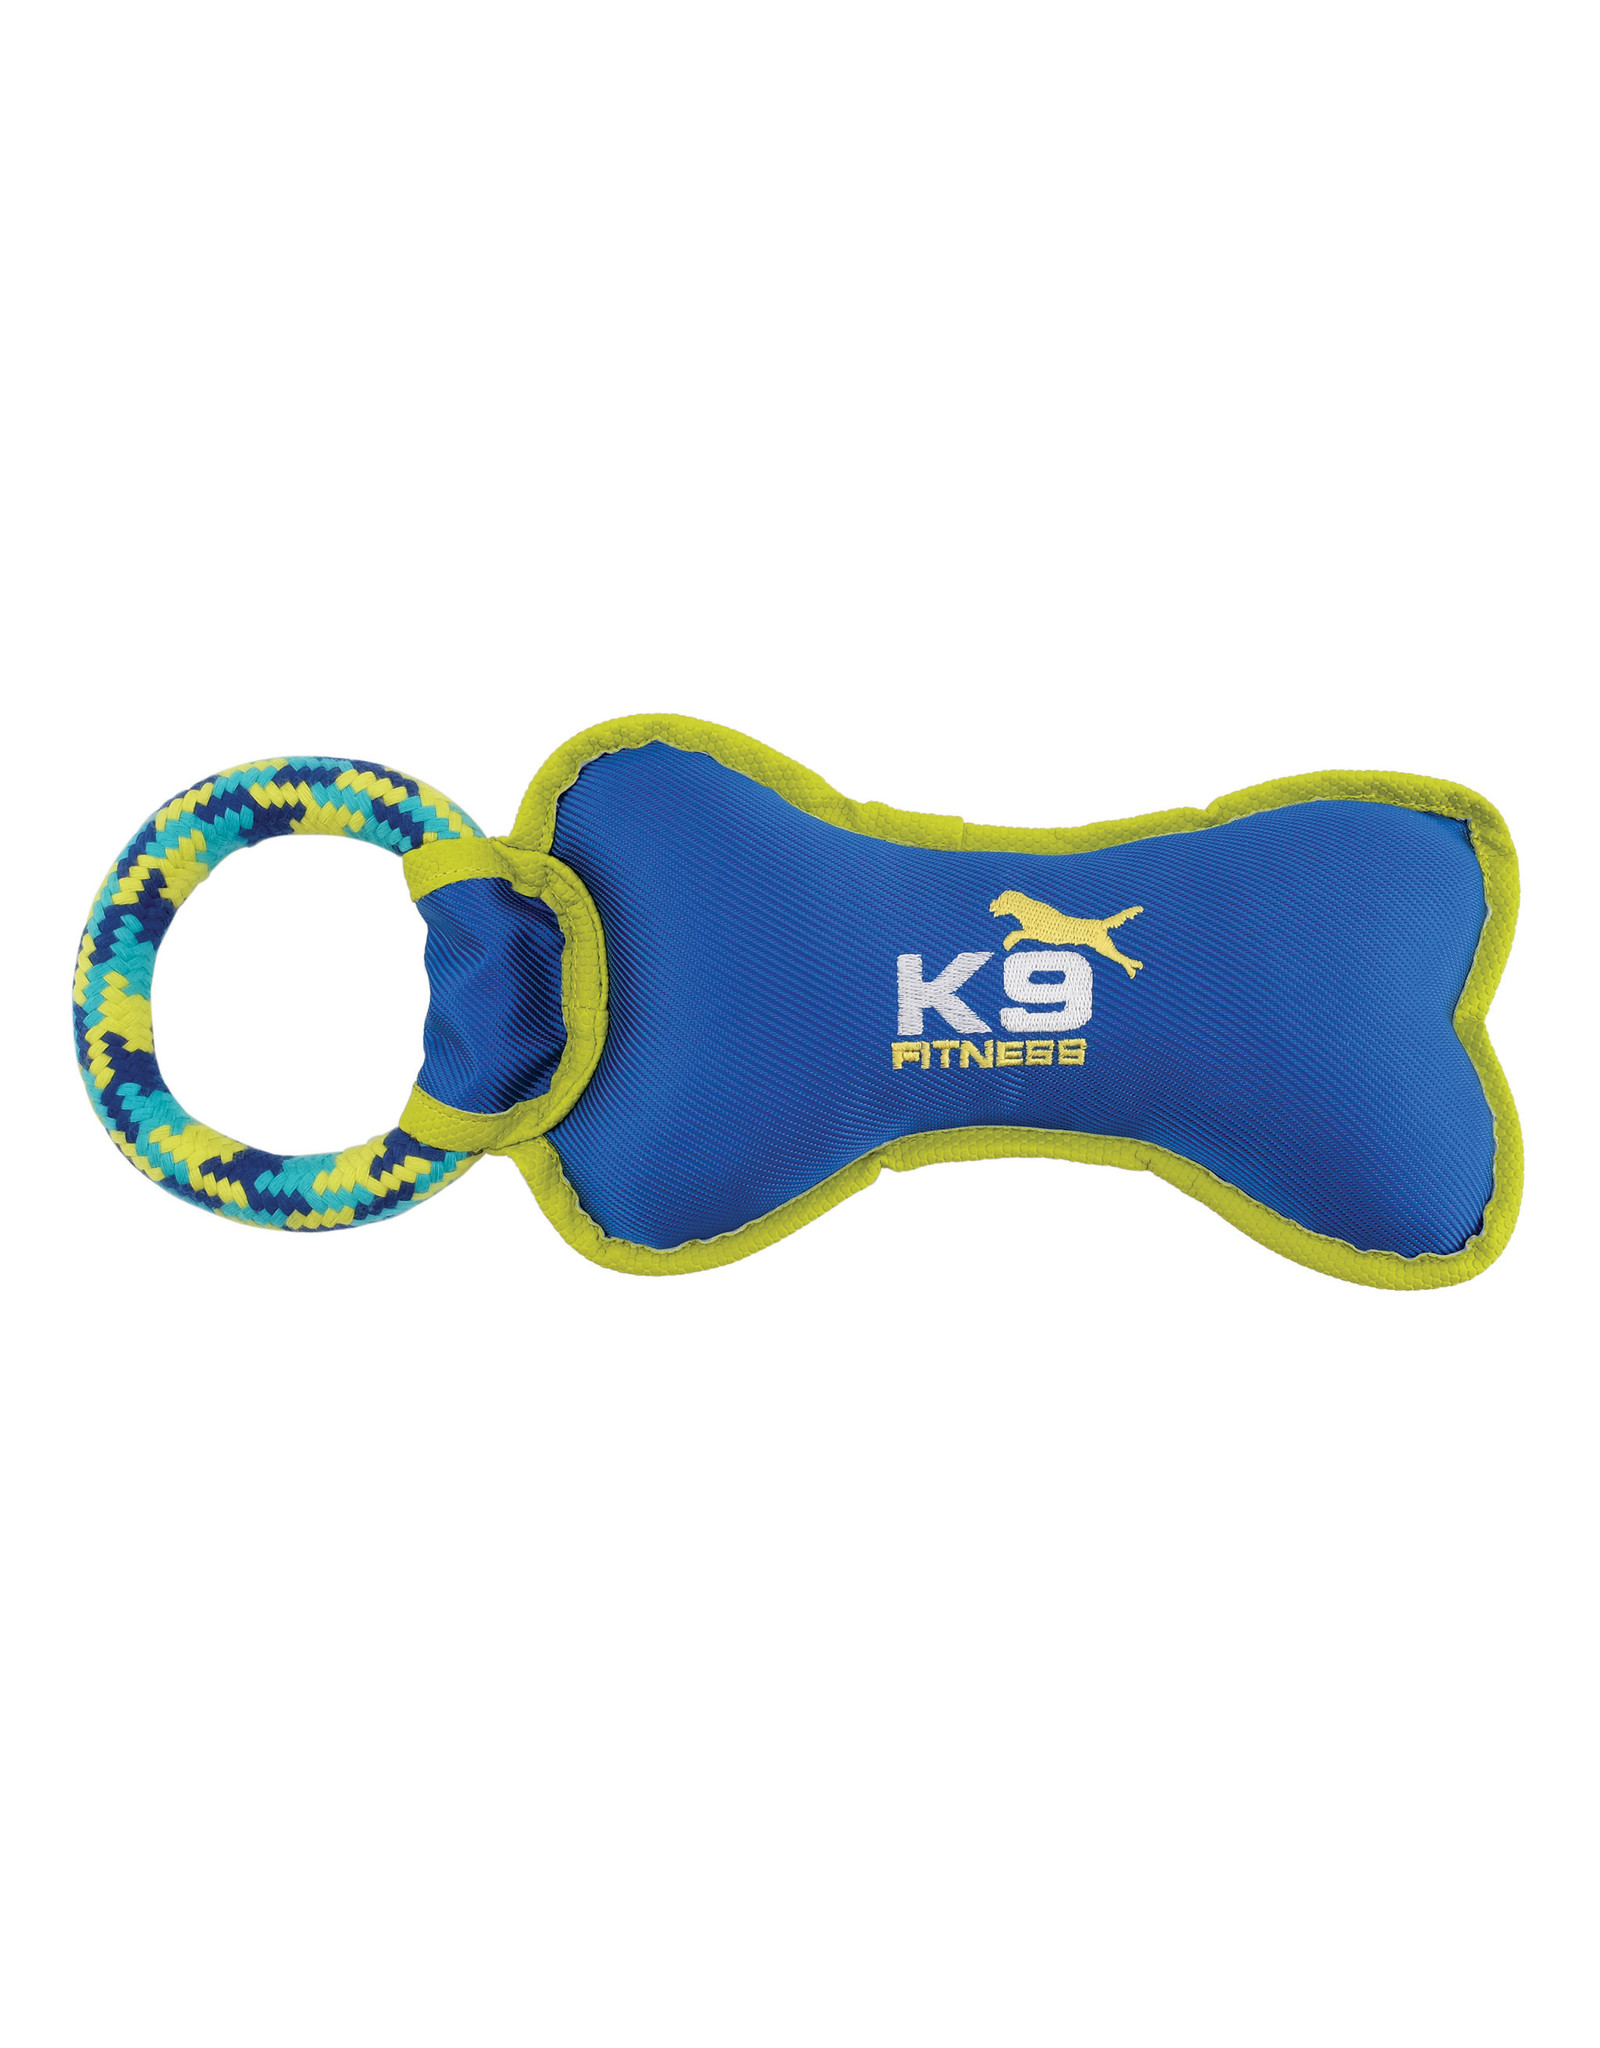 "Zeus K9 Fitness Tough Nylon Bone with Rope Tug - 30.5cm (12.5"")"